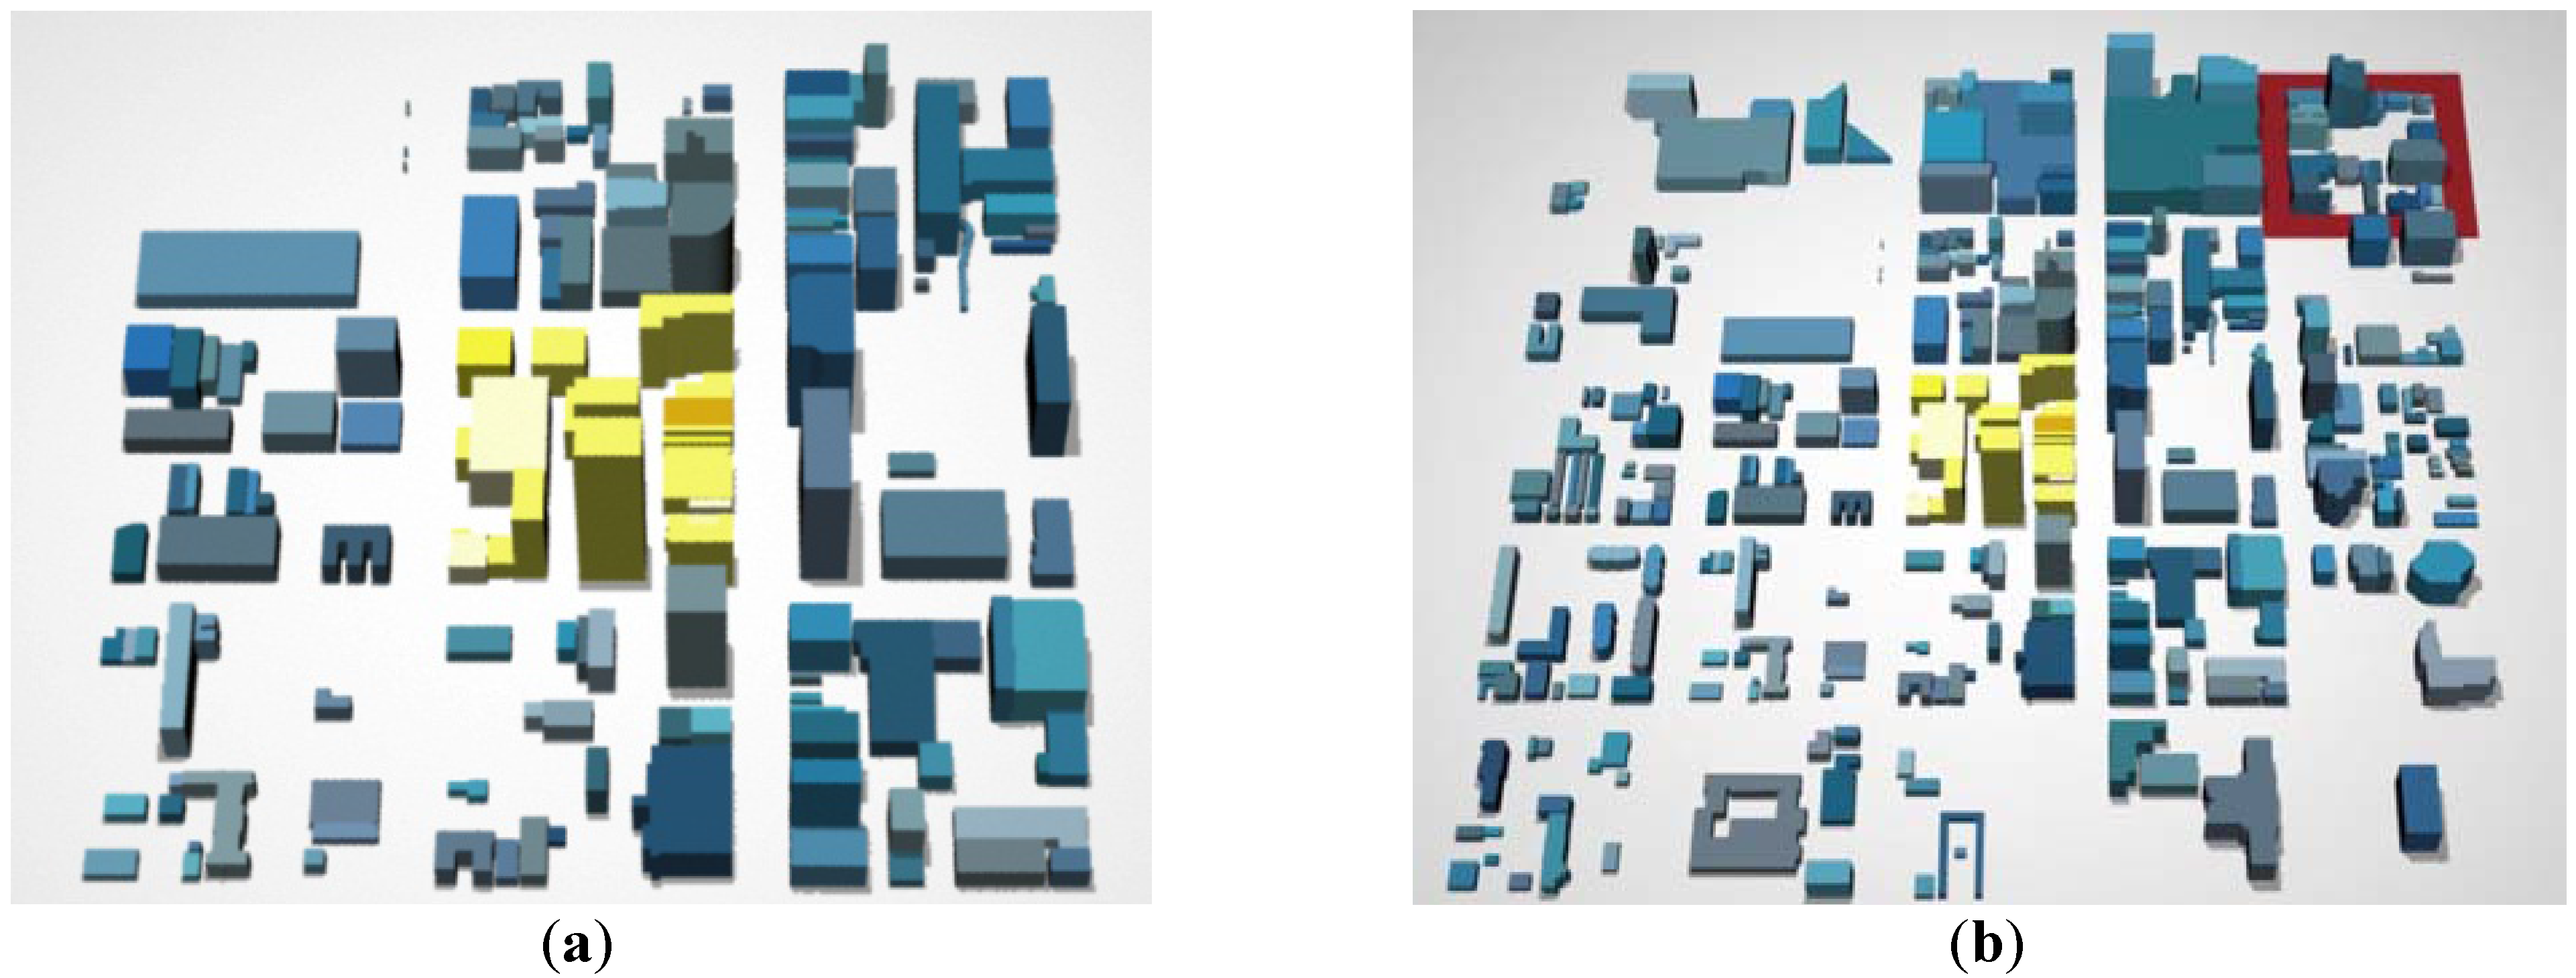 Entropy | Free Full-Text | Simple Urban Simulation Atop Complicated ...